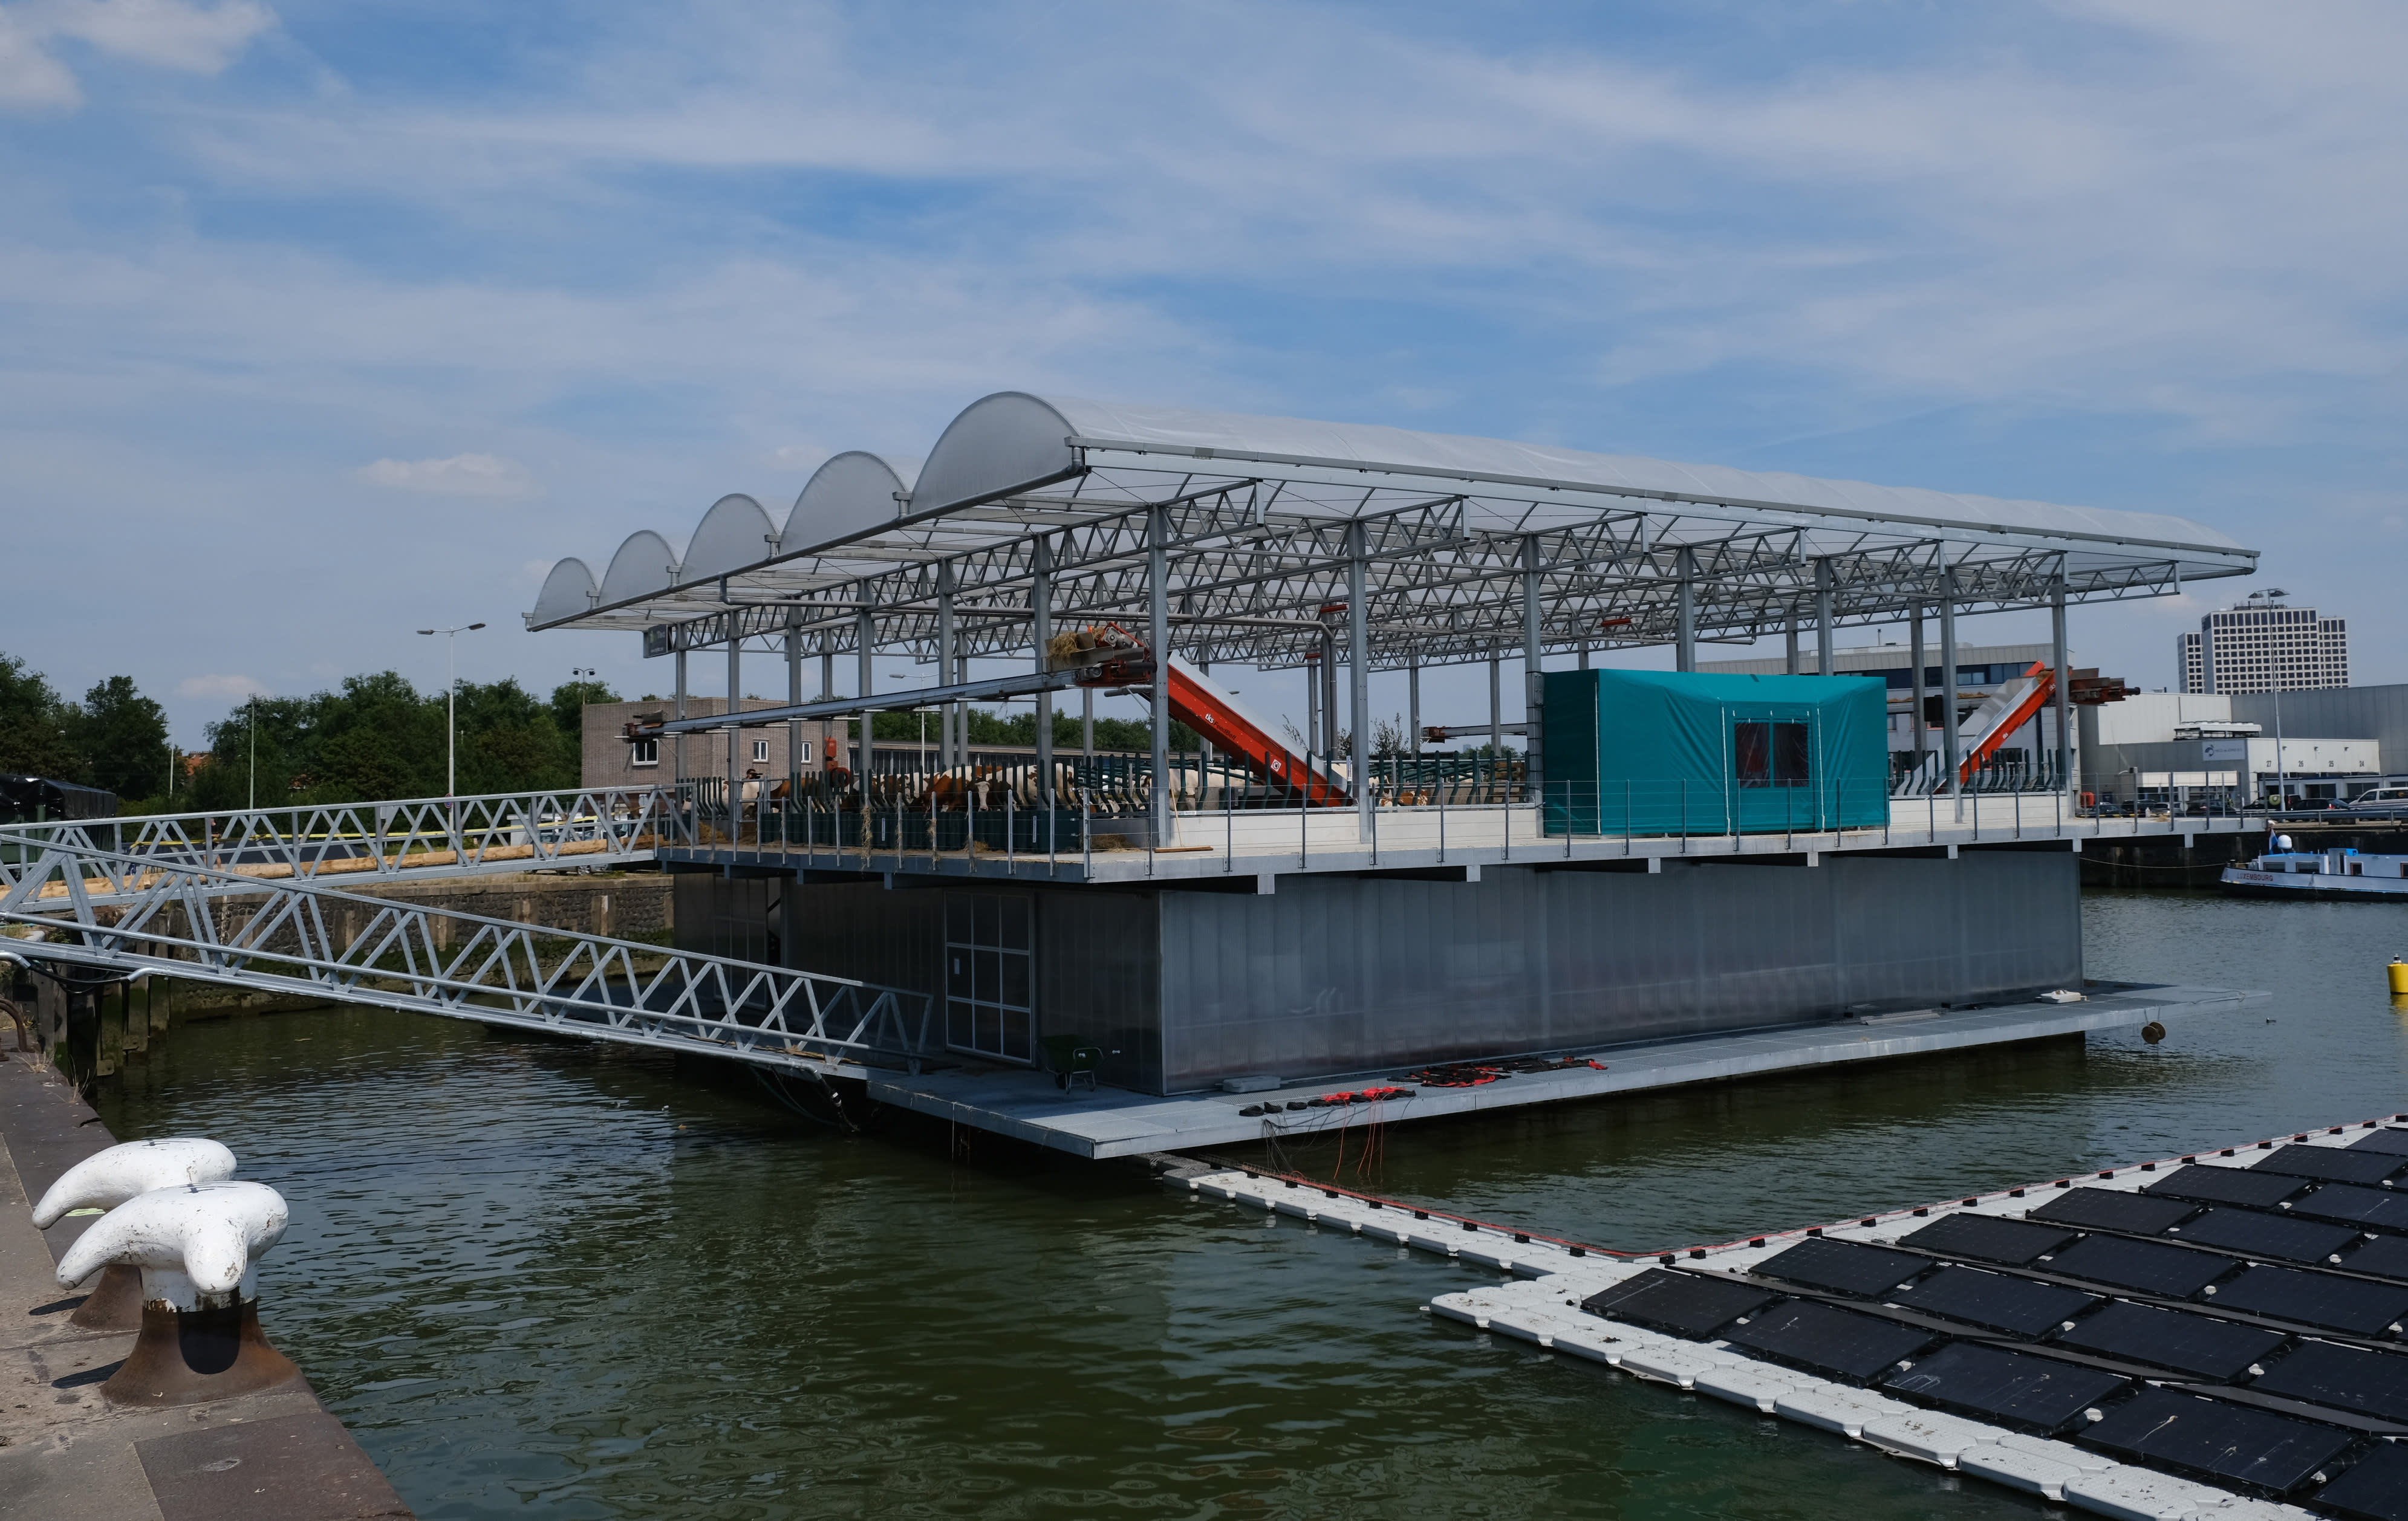 In this photo taken Monday, June 24, 2019, a futuristic three-storey floating farm is moored in Rotterdam harbour, Netherlands, where is is ideally placed to use waste products from a local golf course, brewing company, and a soccer club to claim its green credentials. The floating dairy farm has one robot that milks the cows, another that automatically scoops up the manure, and a roof designed to collect rain water, trailblazing a way to produce dairy foods within a busy modern city for growing populations, according to the small holding farmer Peter van Wingerden. (AP Photo/Mike Corder)